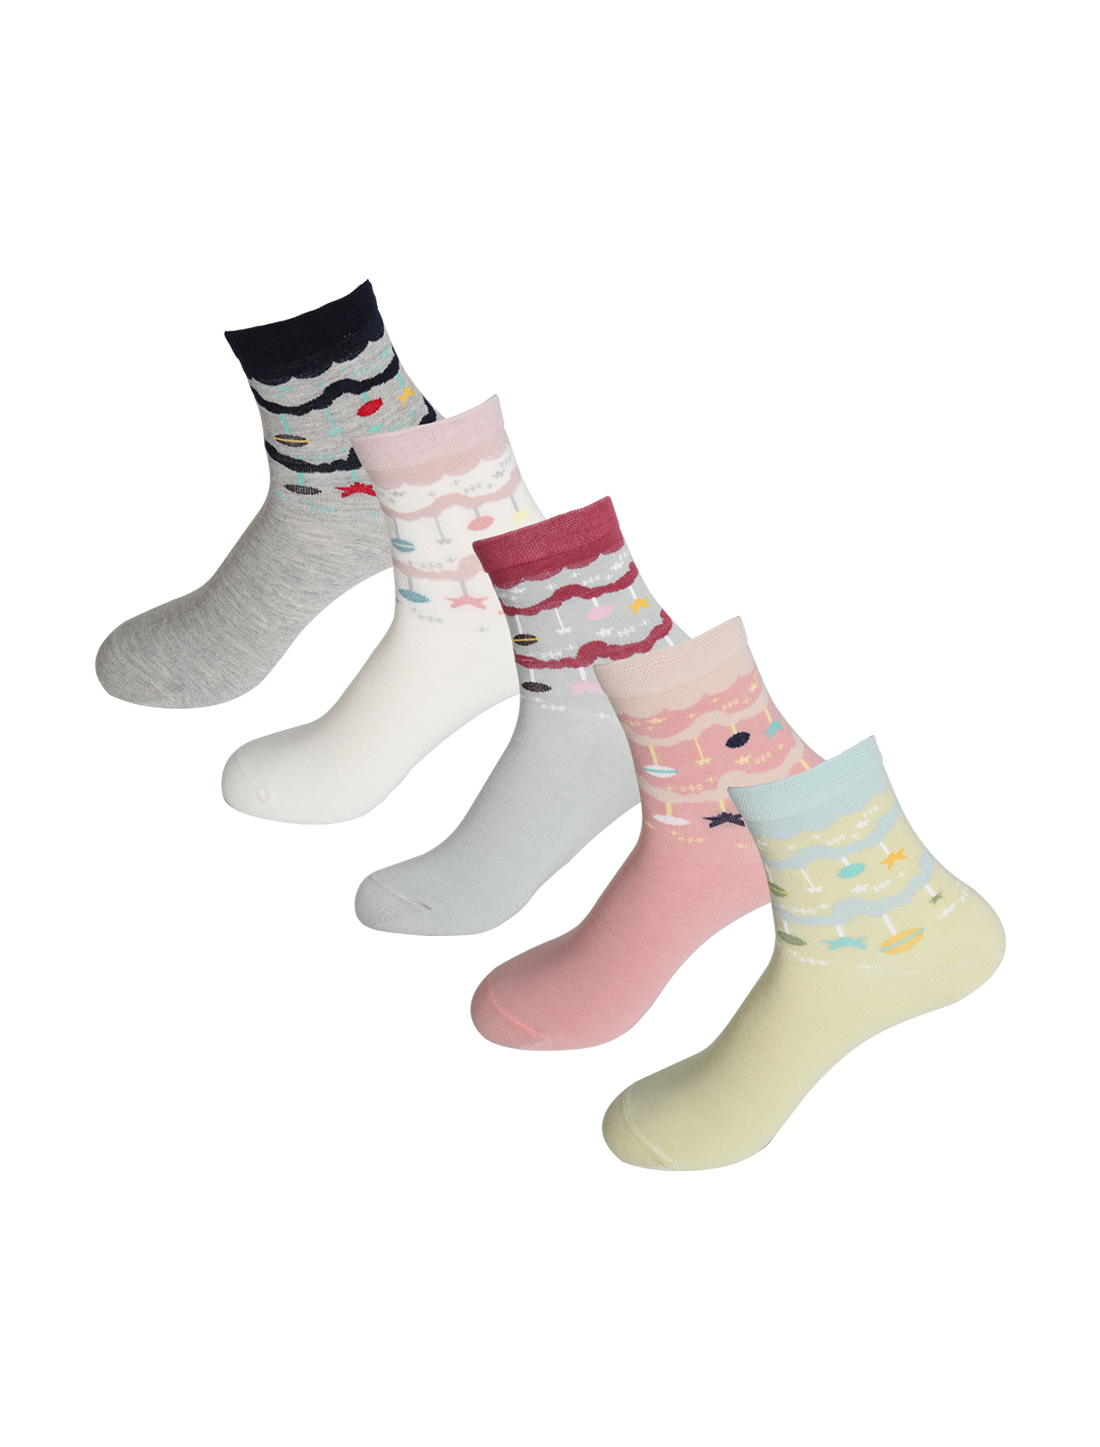 Women 5 Pack Stretchy Pendant All Season Crew Socks Assorted 9-11